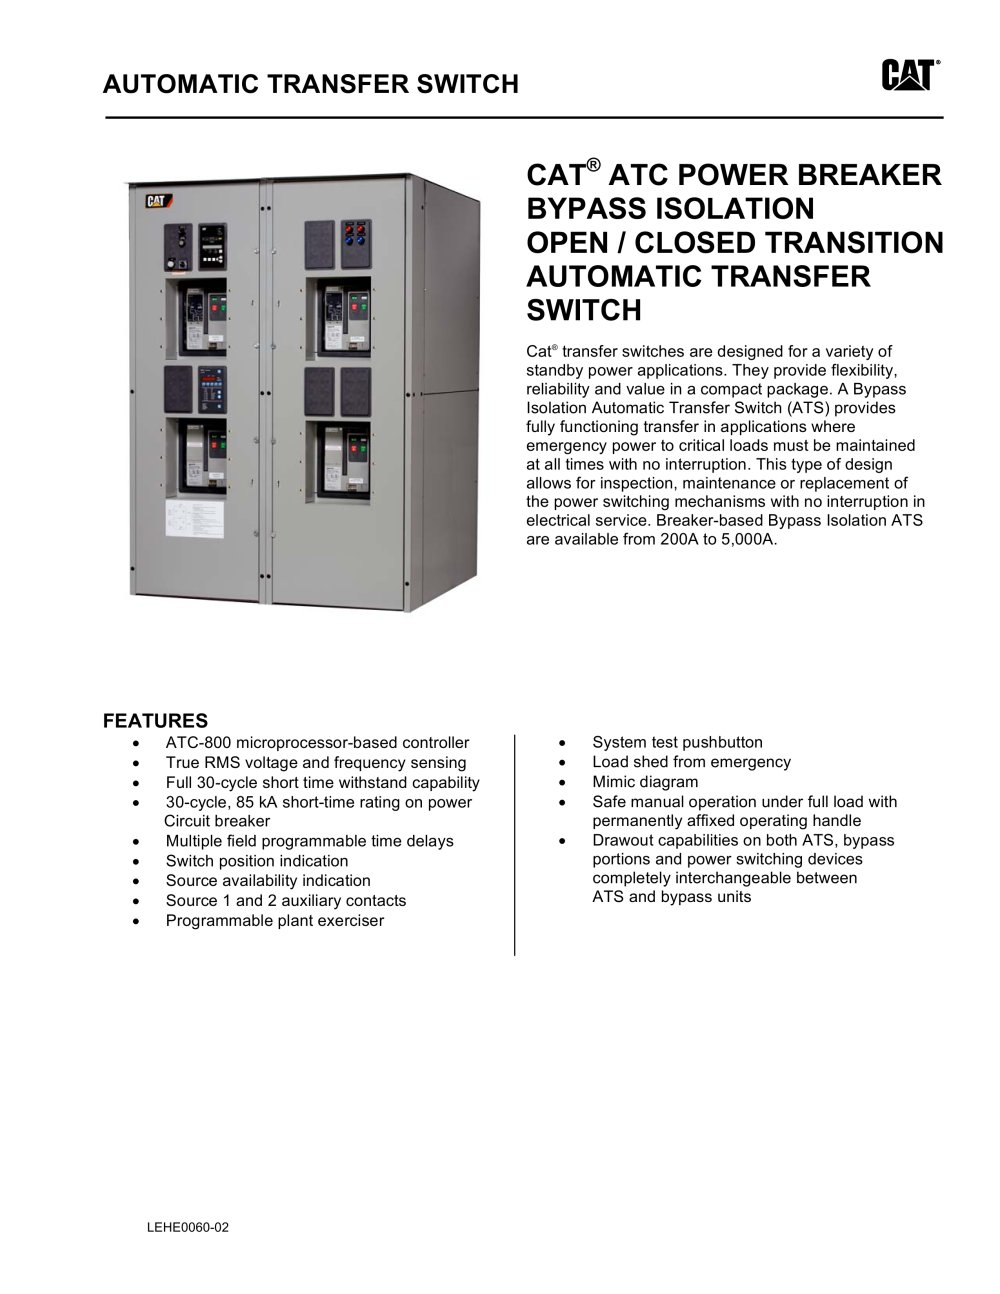 atc power breaker bypass isolation open/closed transition automatic transfer  switch - 1 / 4